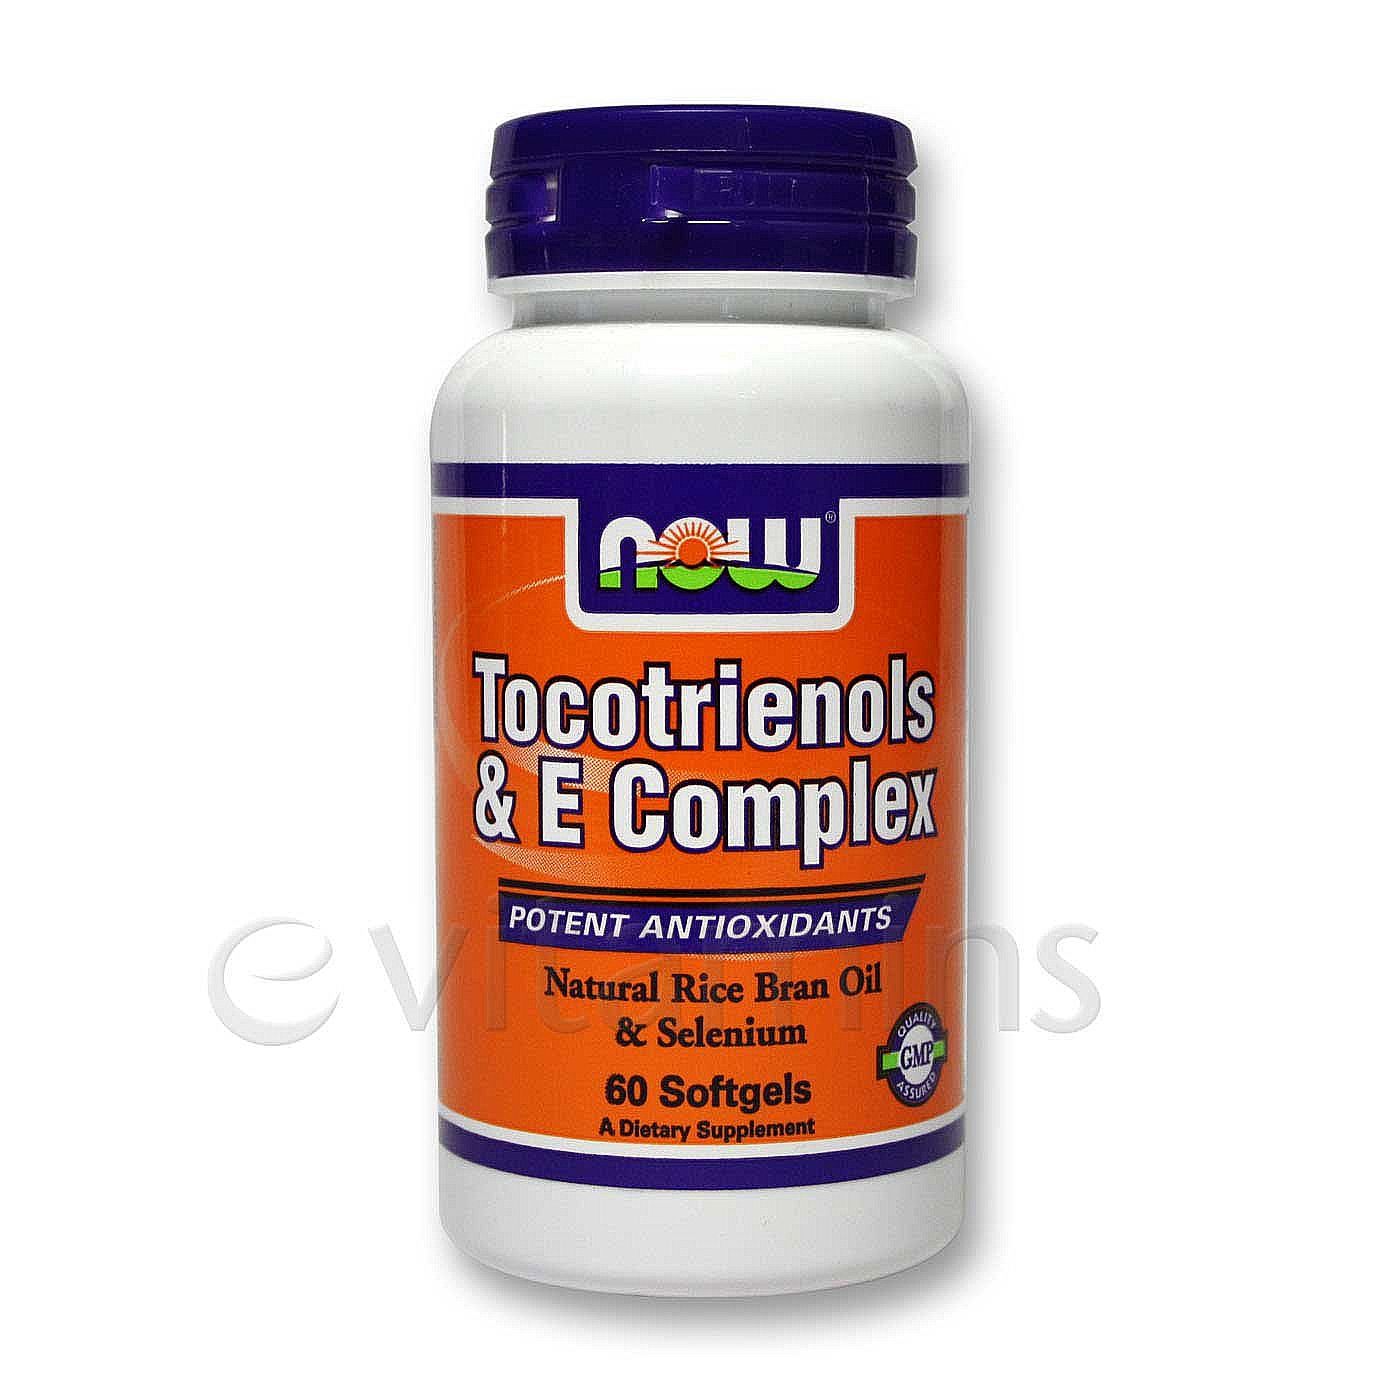 Tocotrienol supplements